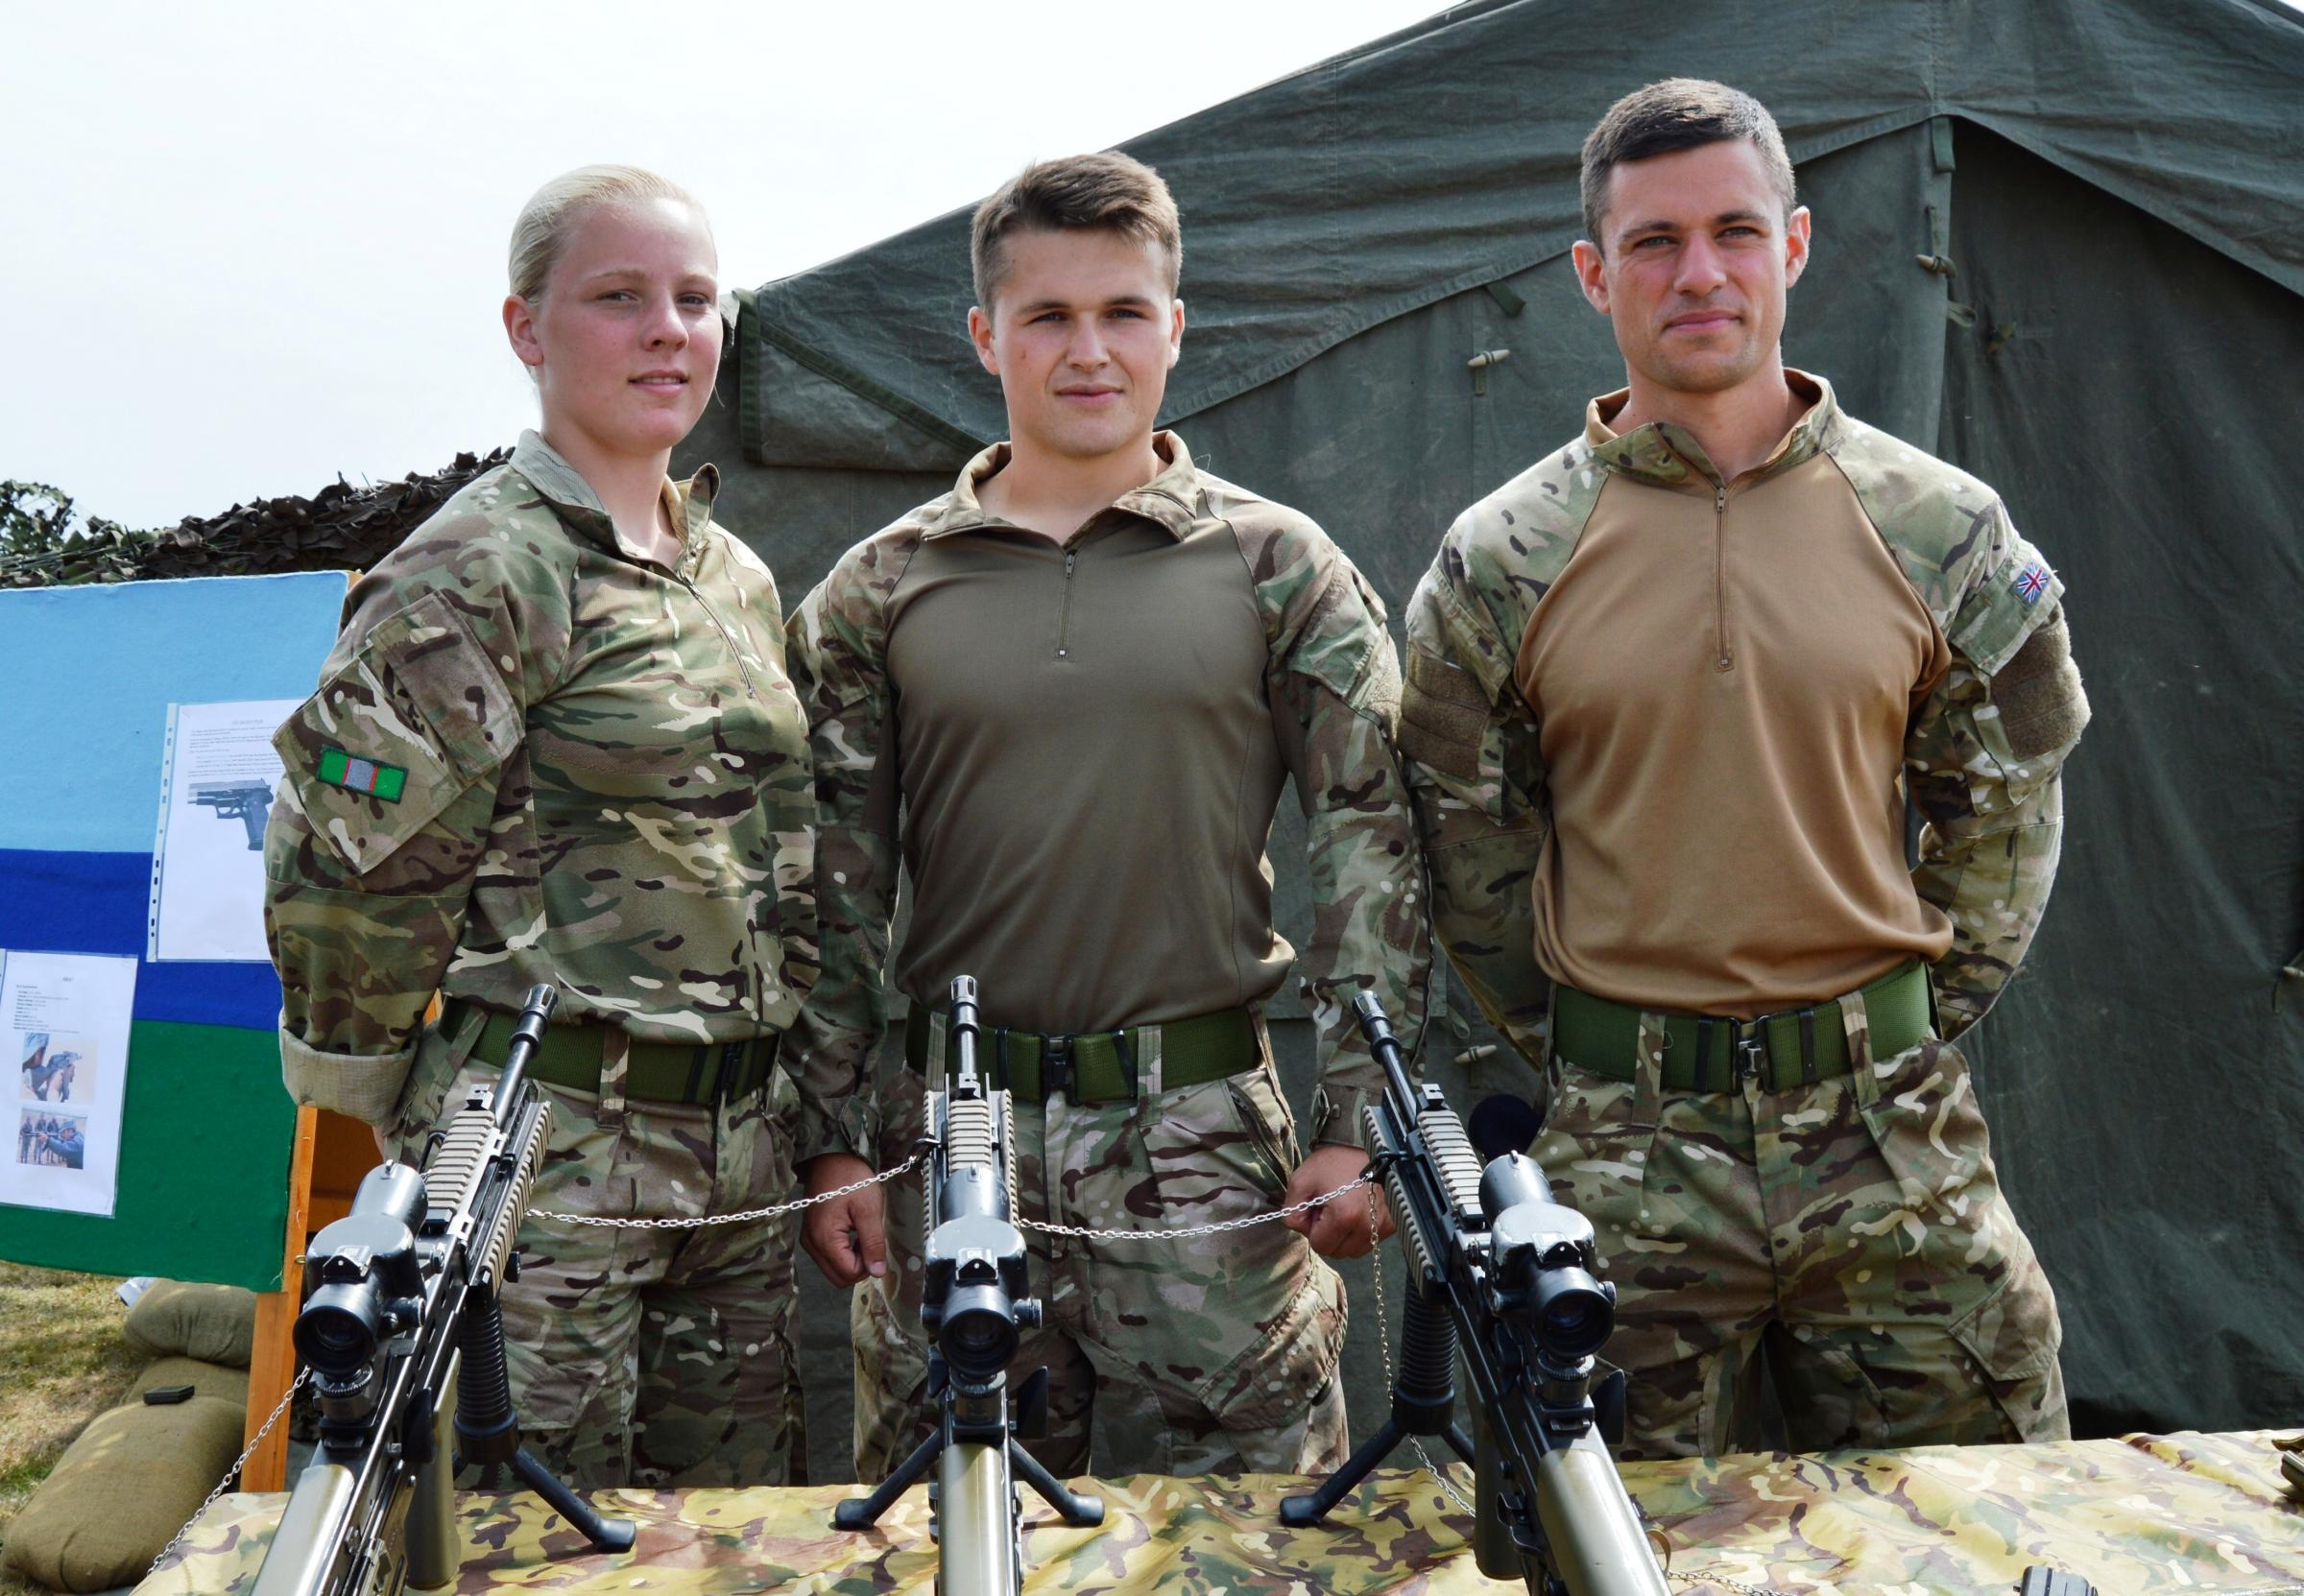 Family fun at the 14th Signal Regiment open day